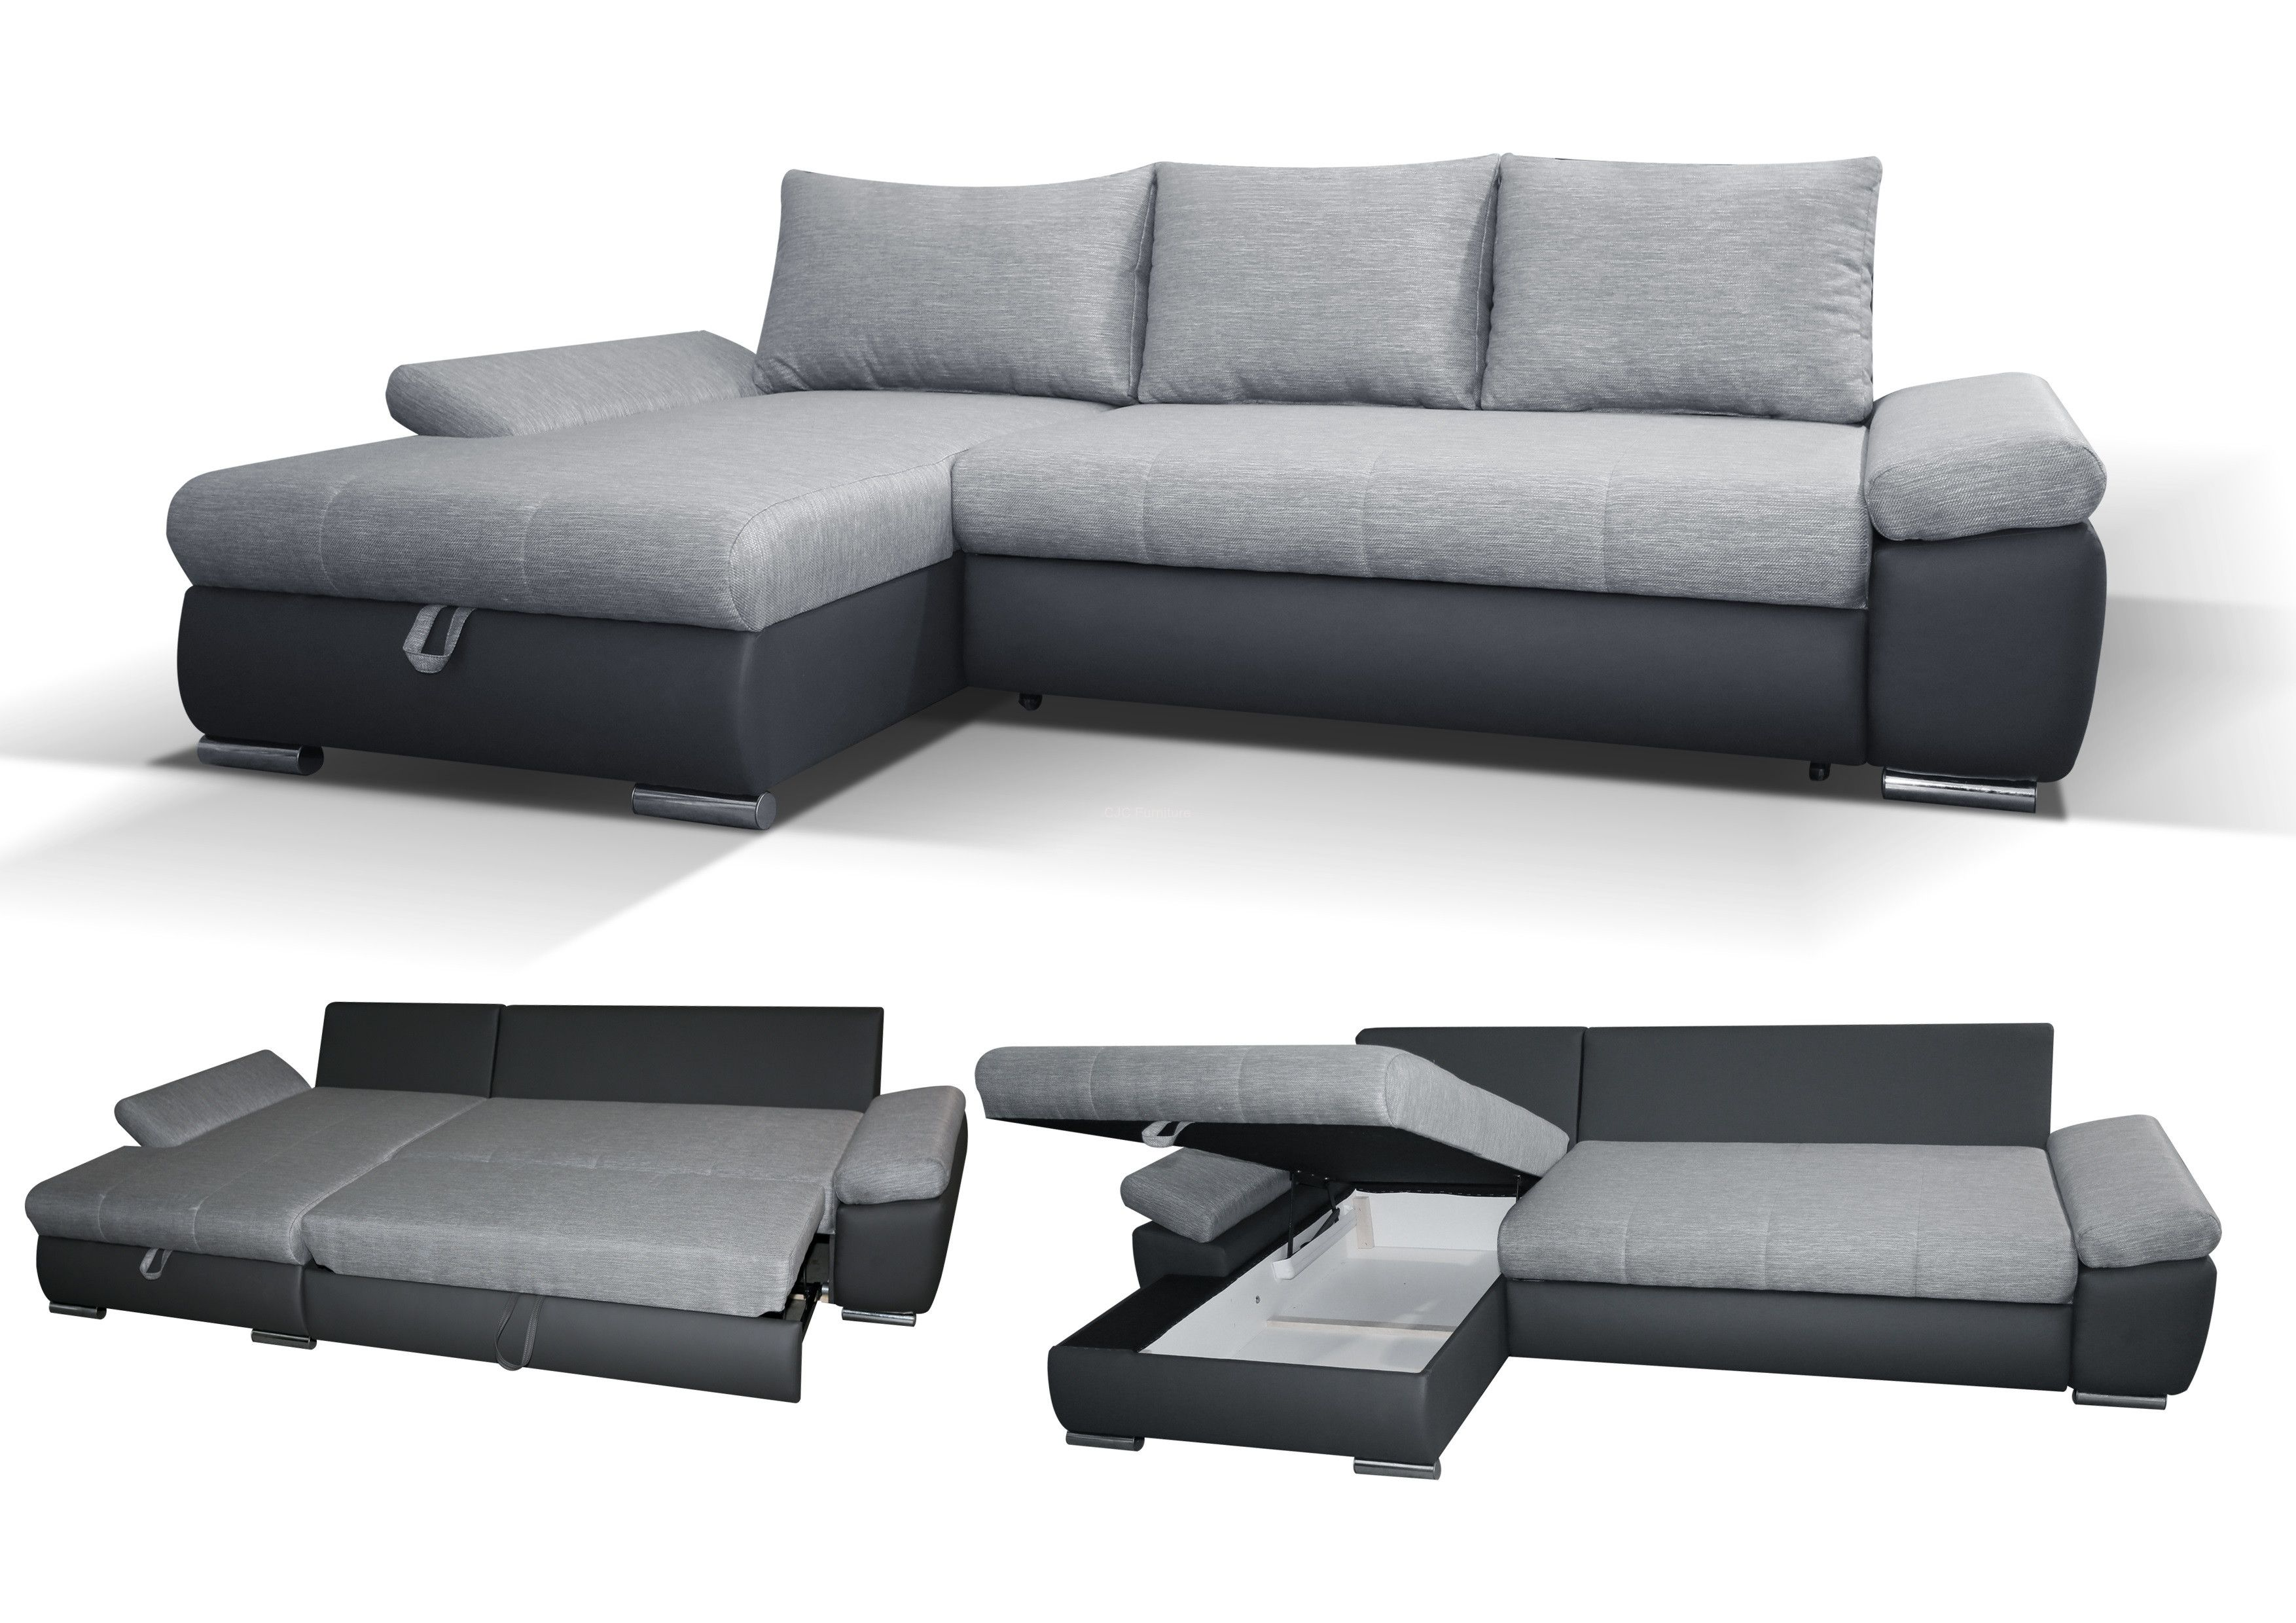 A Corner Sofa Bed For Your Home Caserto Corner Sofa Bed Left Handed Amluccp Corner Sofa Bed Modern Sofa Bed Best Sleeper Sofa